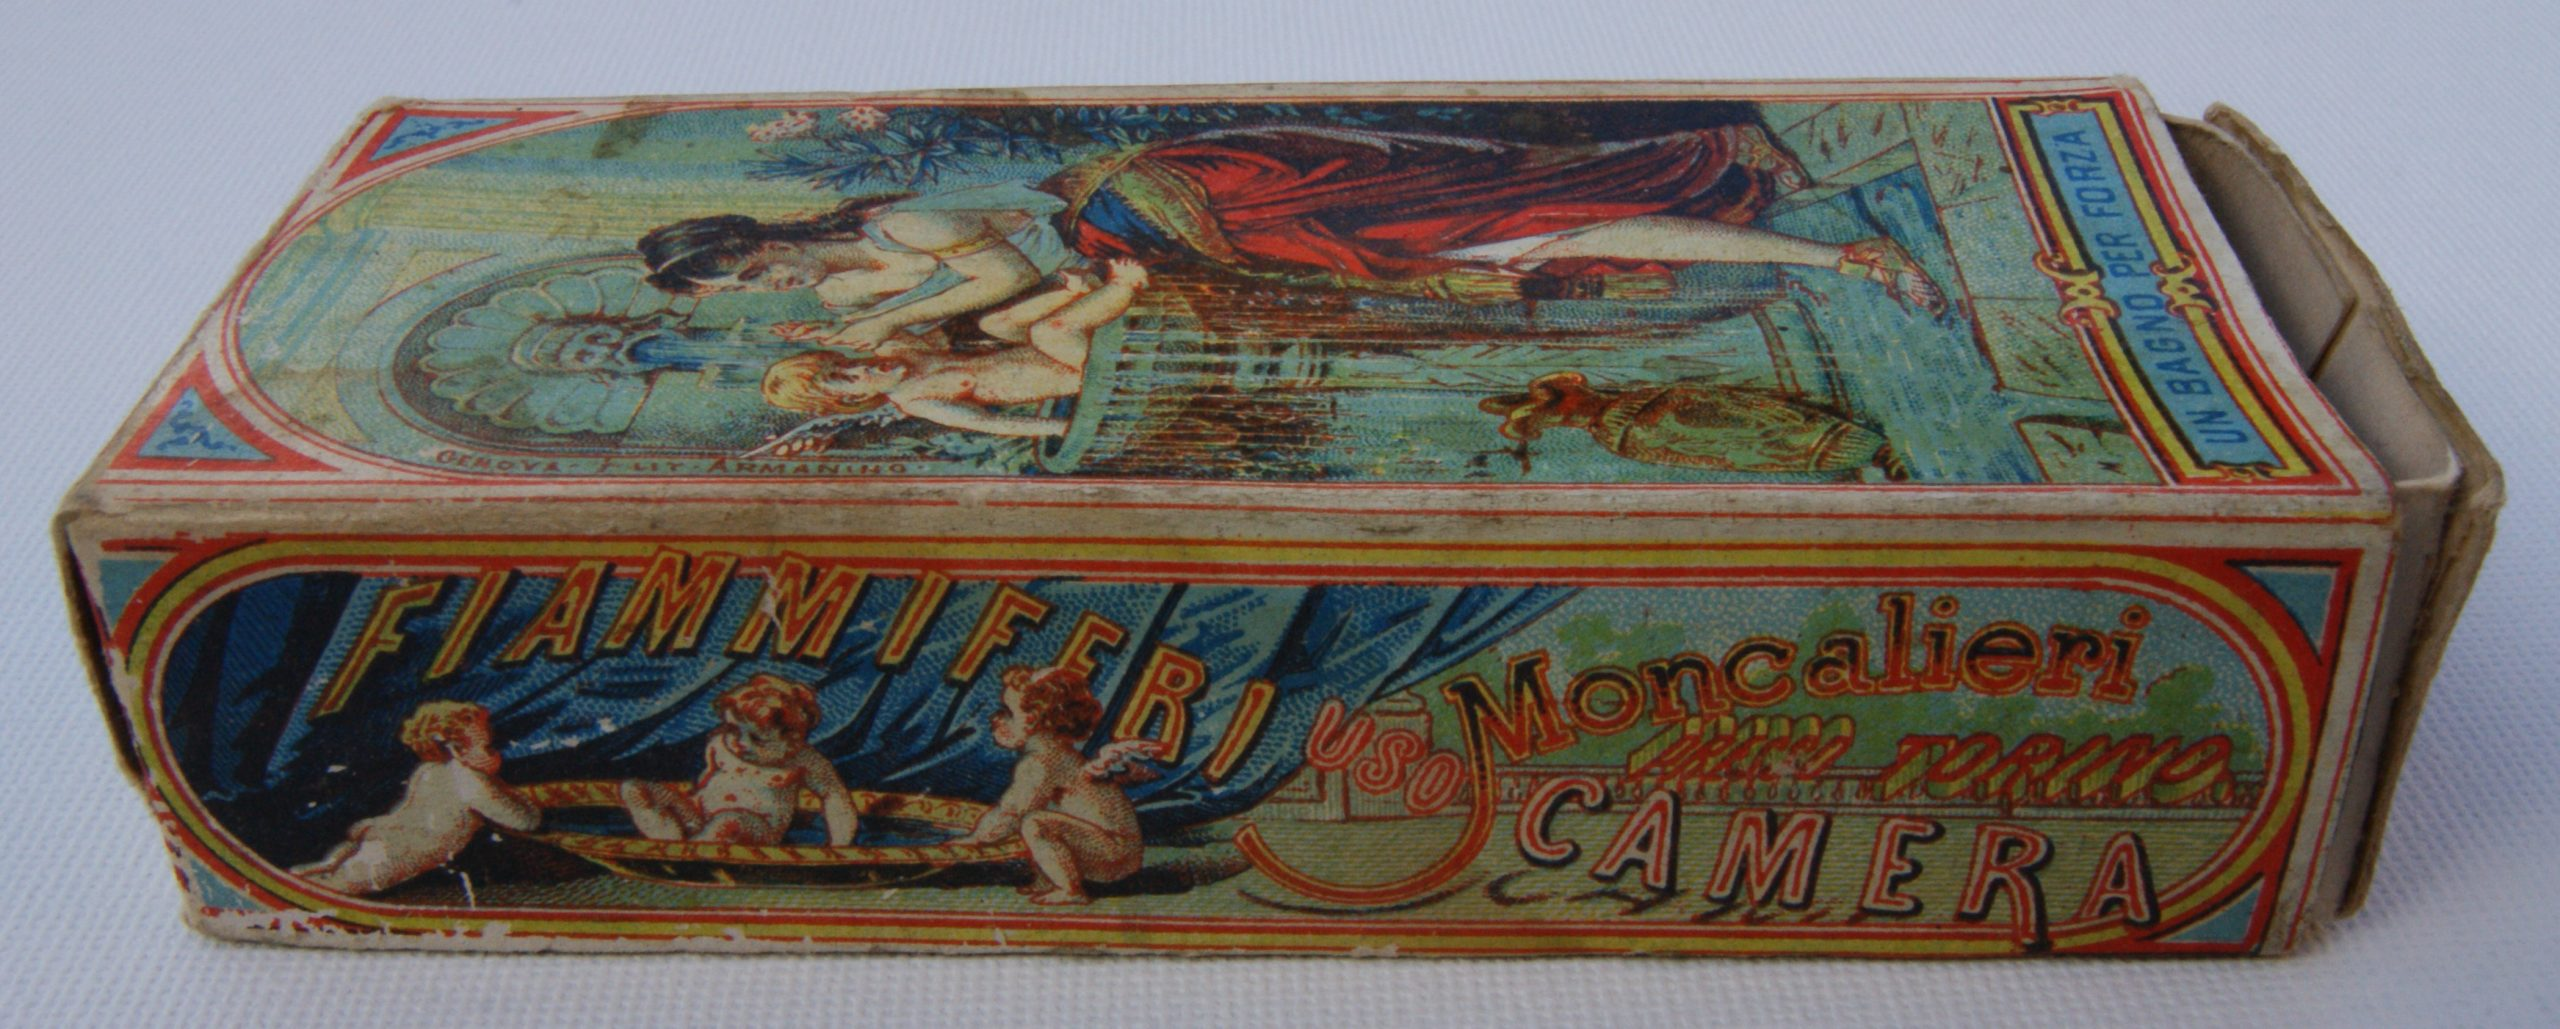 A. Dellacha box (view showing a side elevation of the matchbox)